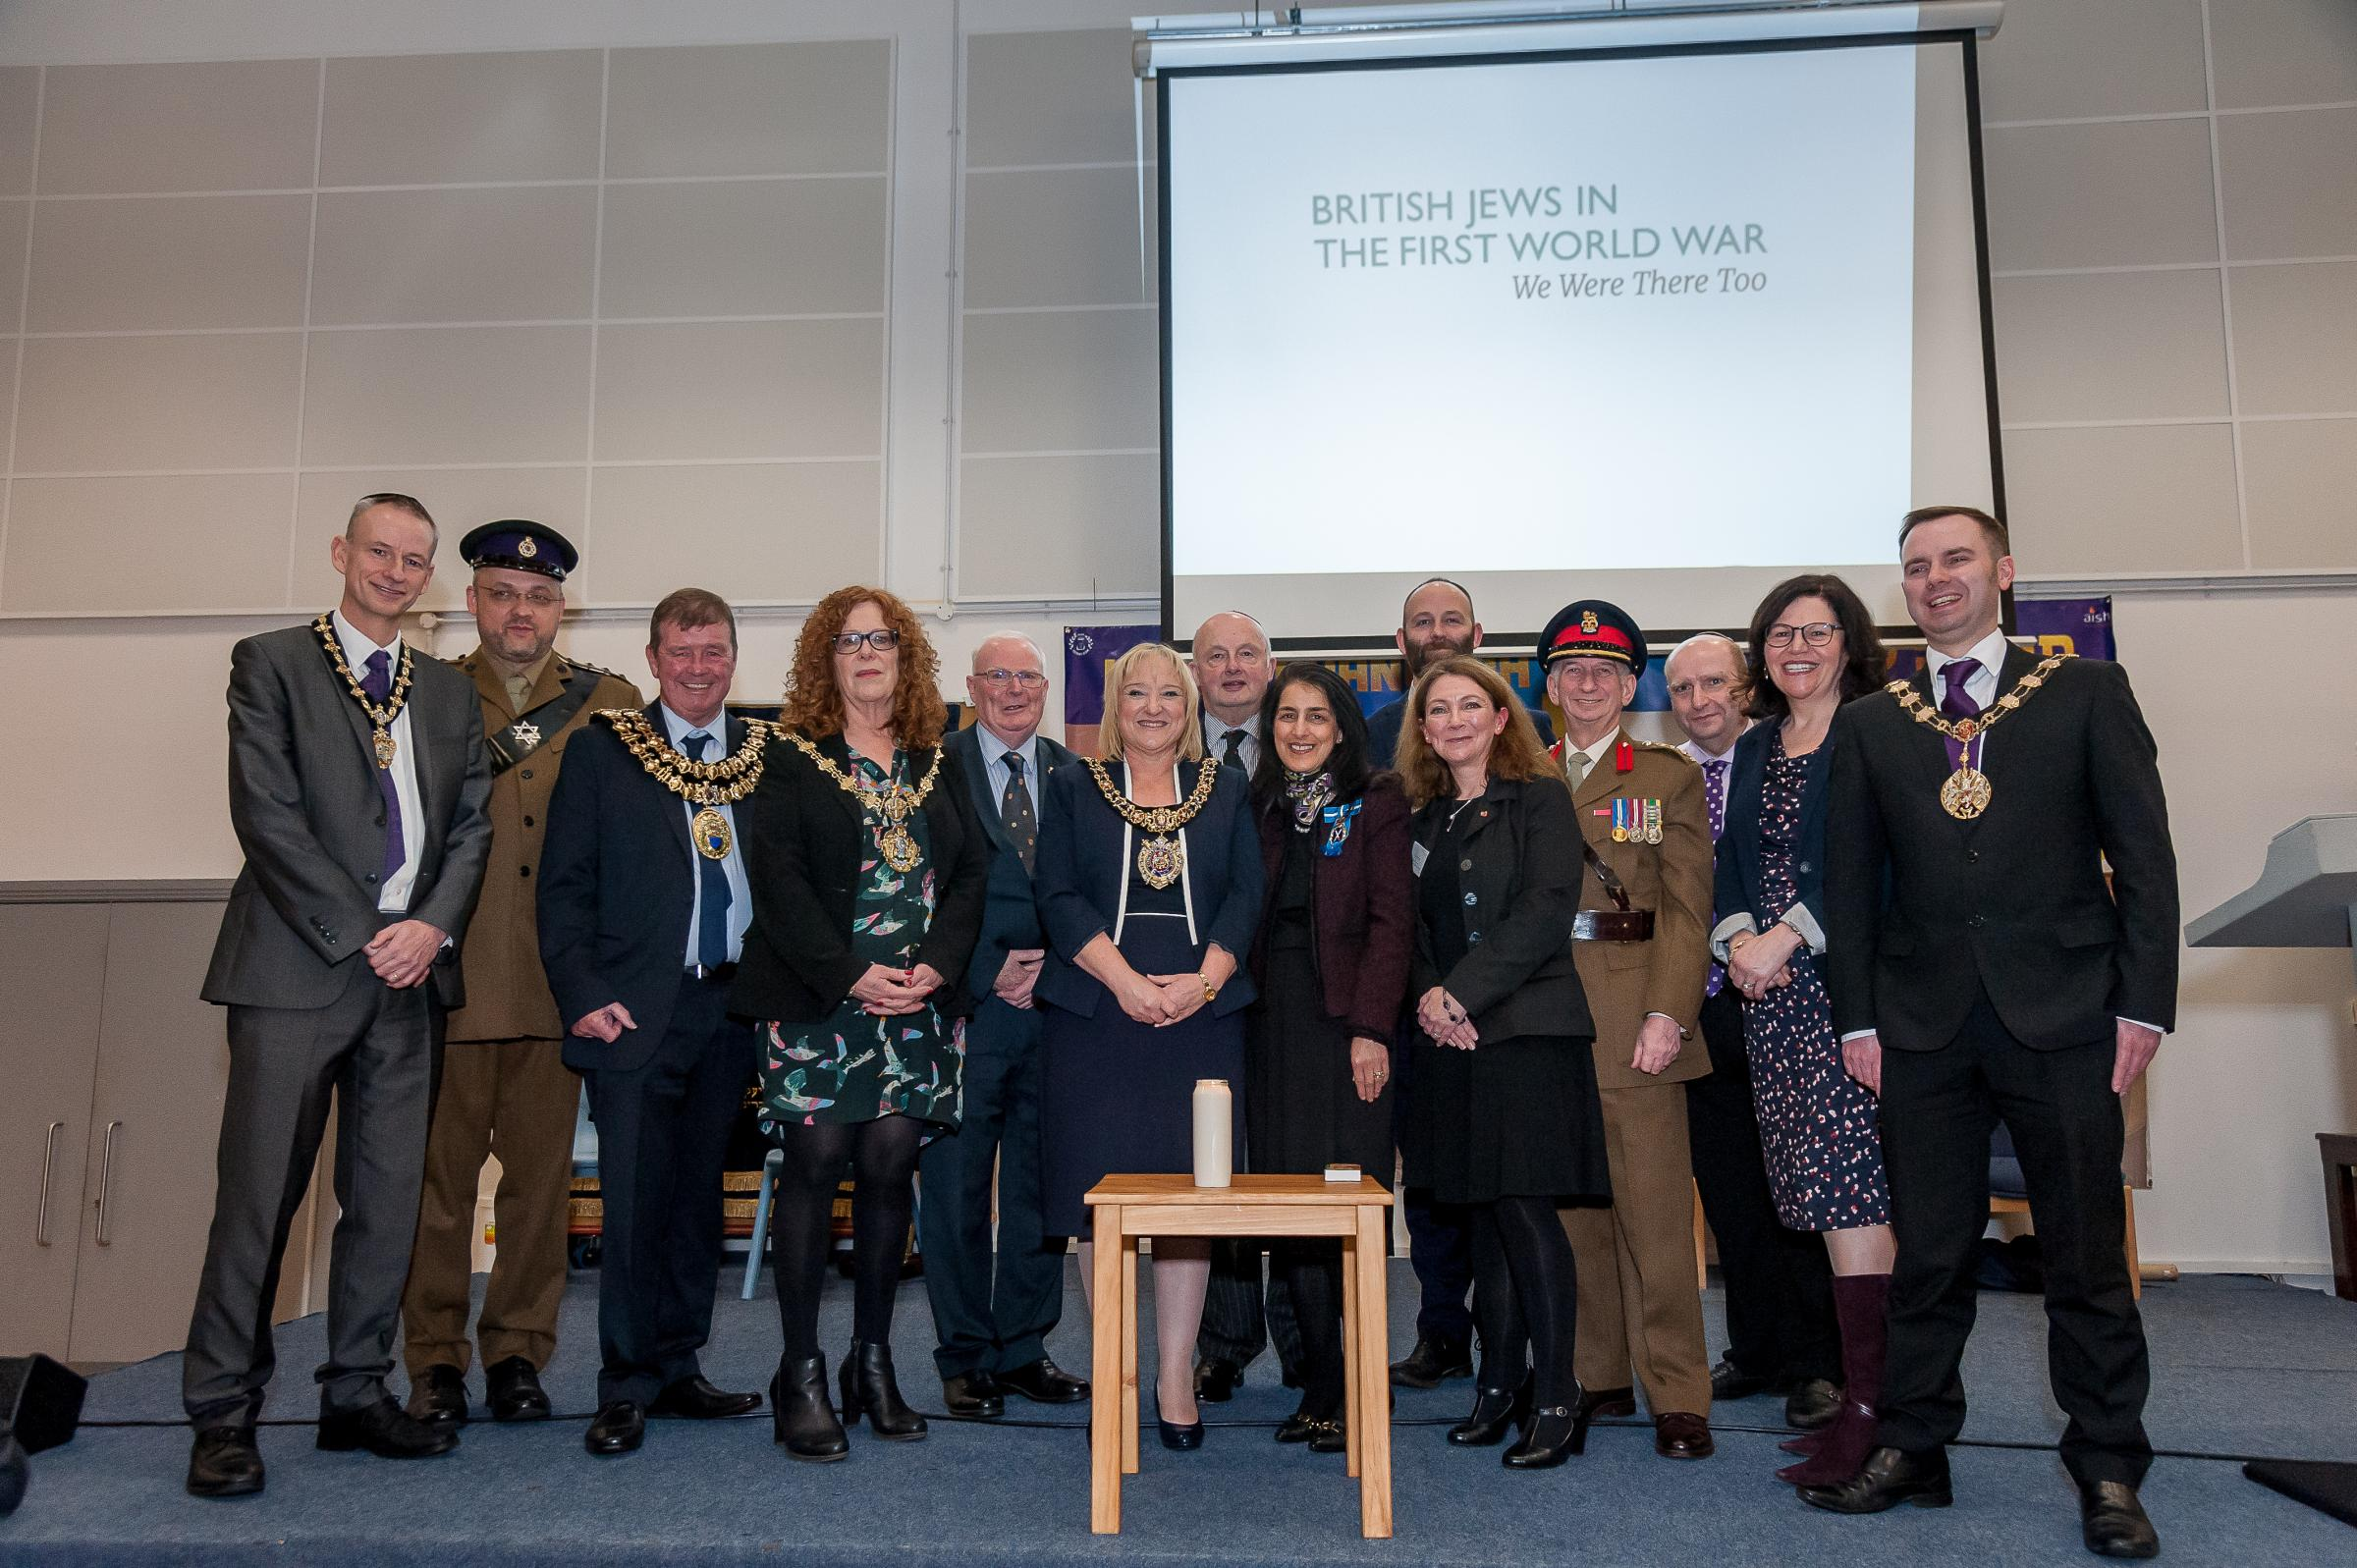 The Mayor of Bury, Cllr Jane Black, and other dignitaries at the We Were There Too launched in Manchester. Photo: Mike Poloway